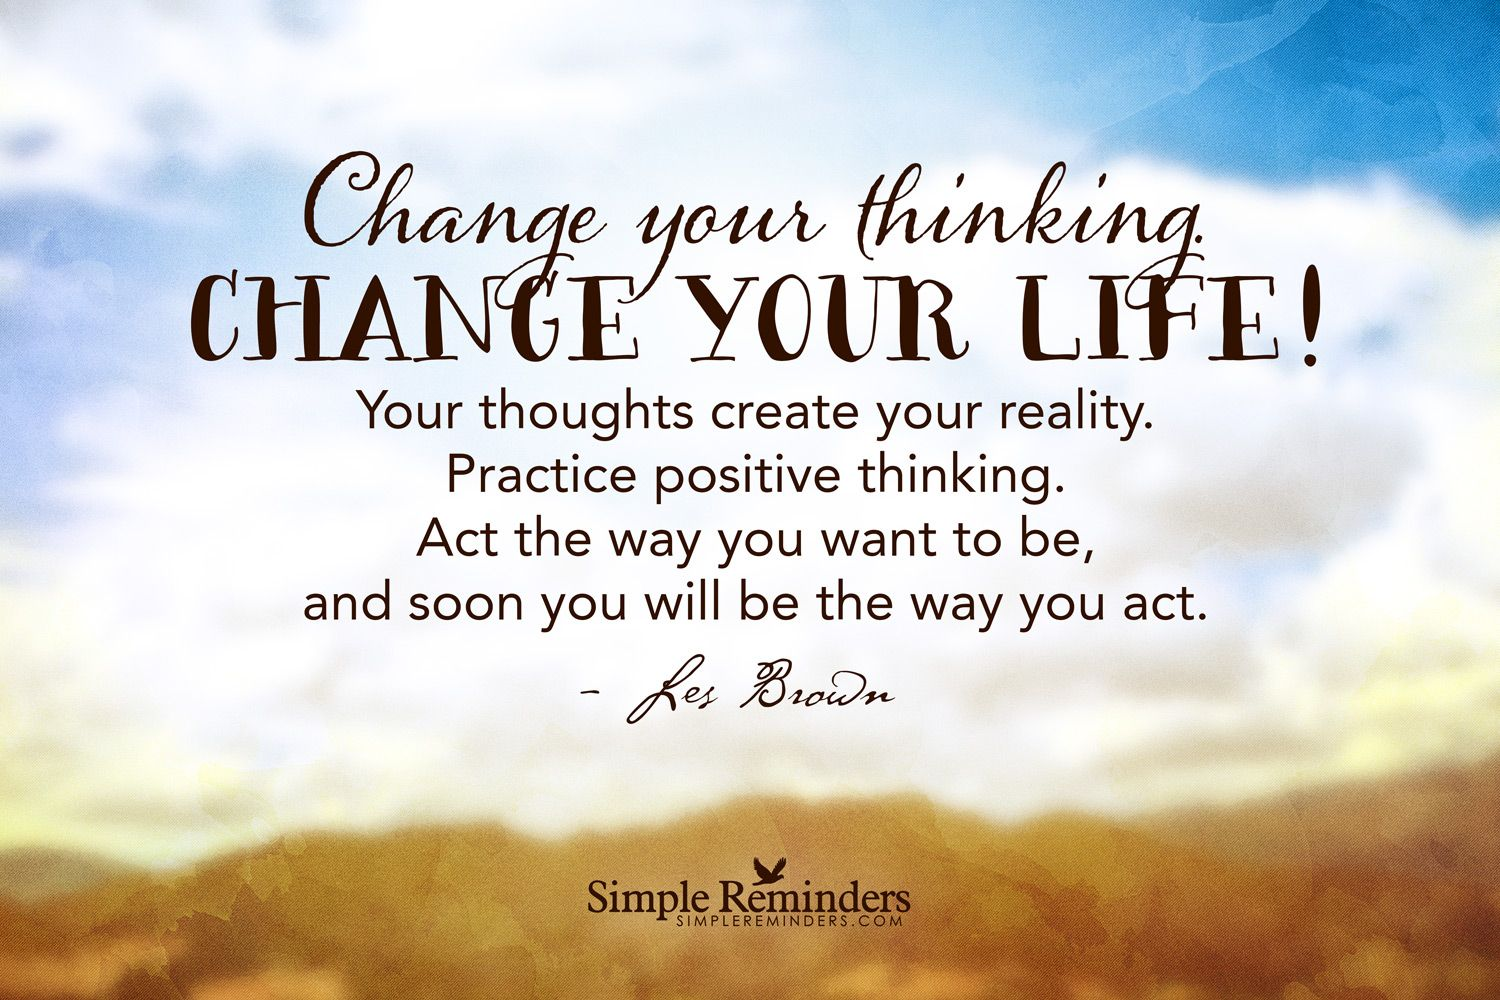 Change your thinking. Change your life! Your thoughts